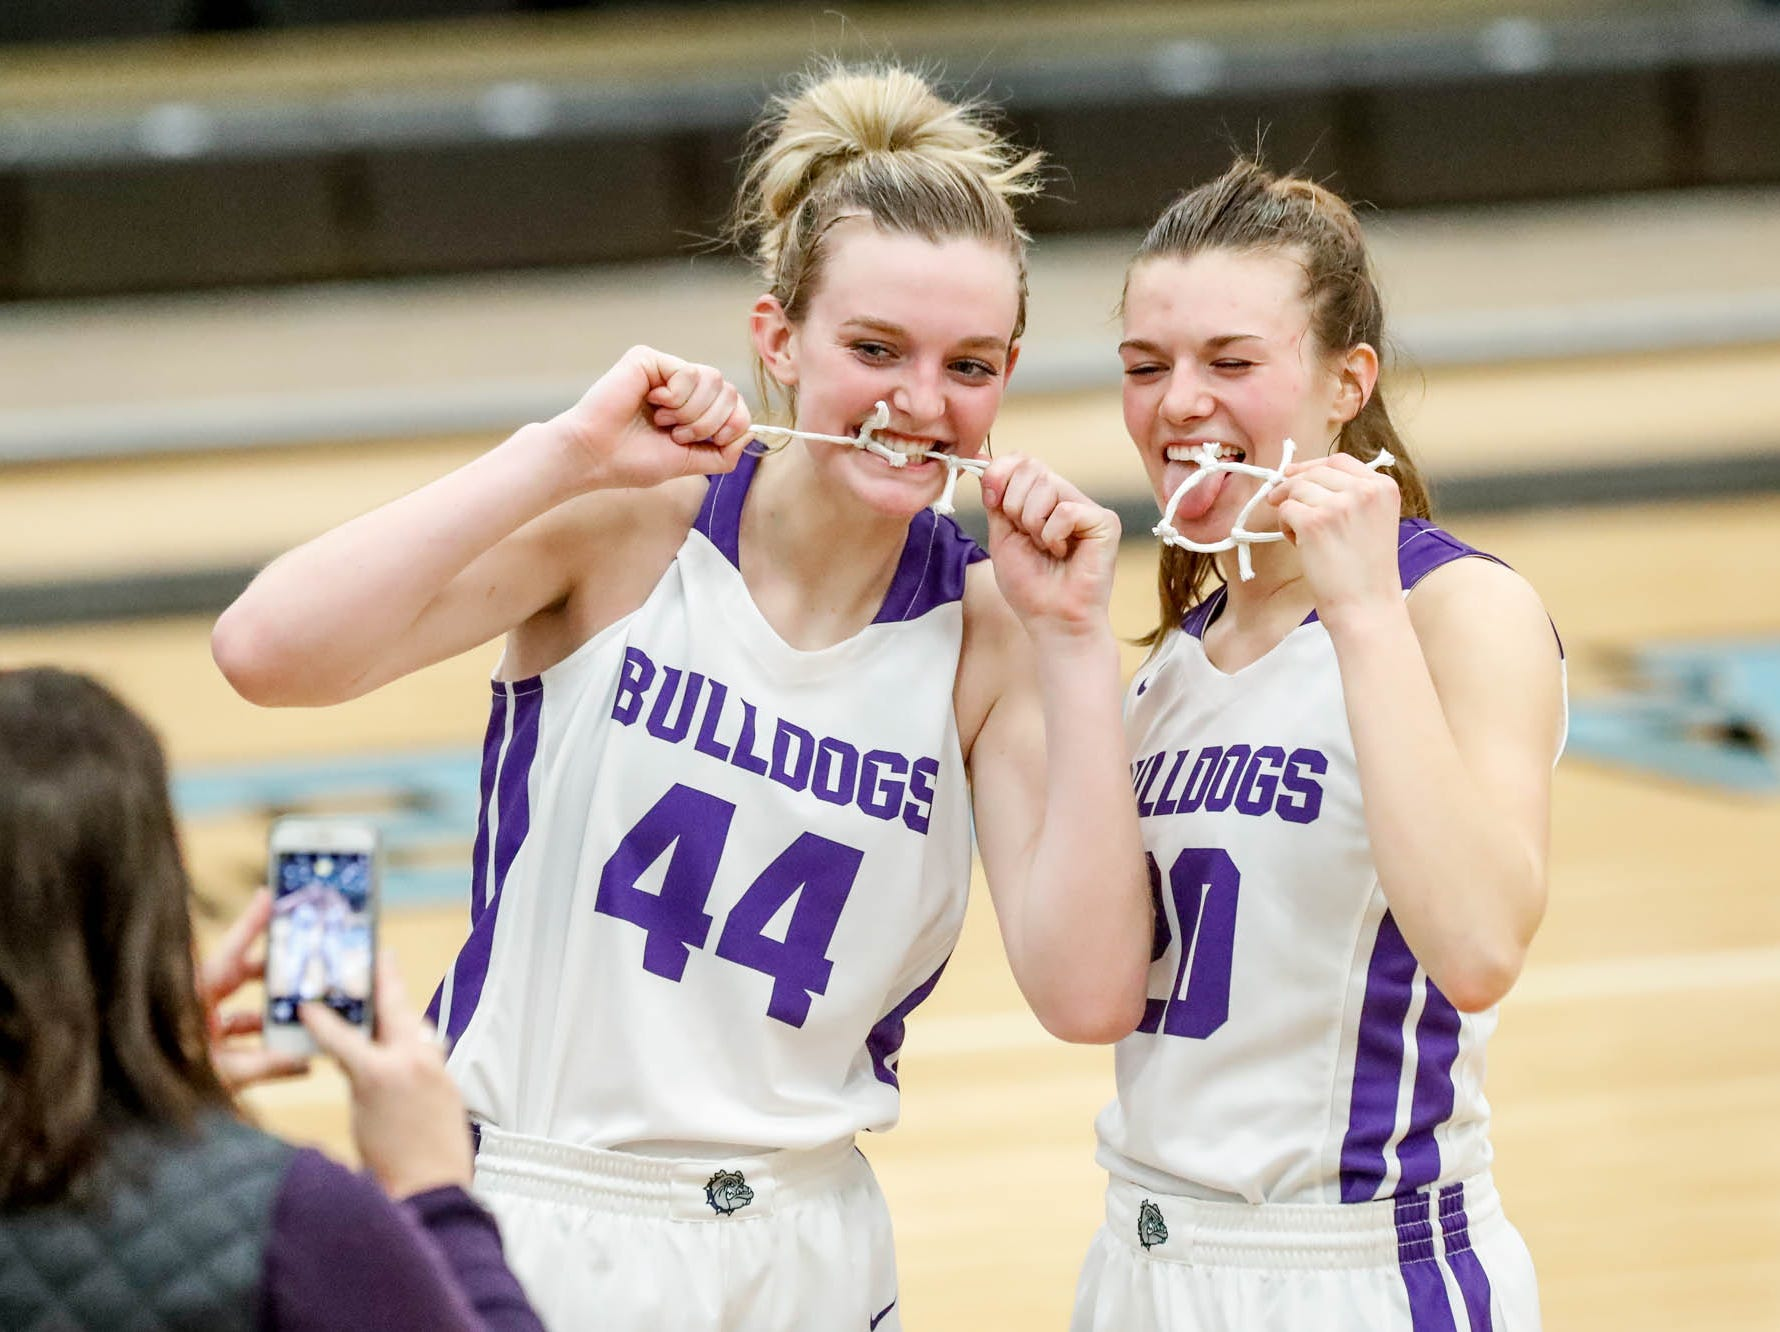 Brownsburg High School's forward Mackenzie Stien (44), and Brownsburg High School's guard Allison Bosse (20), pose for photos with pieces of the net afterwinning the 2019 Hendricks County Basketball Tournament game between the Avon High School girls varsity basketball team and Brownsburg High School, held at Cascade High School on Saturday, Jan. 5, 2019. The final score was 69-44.